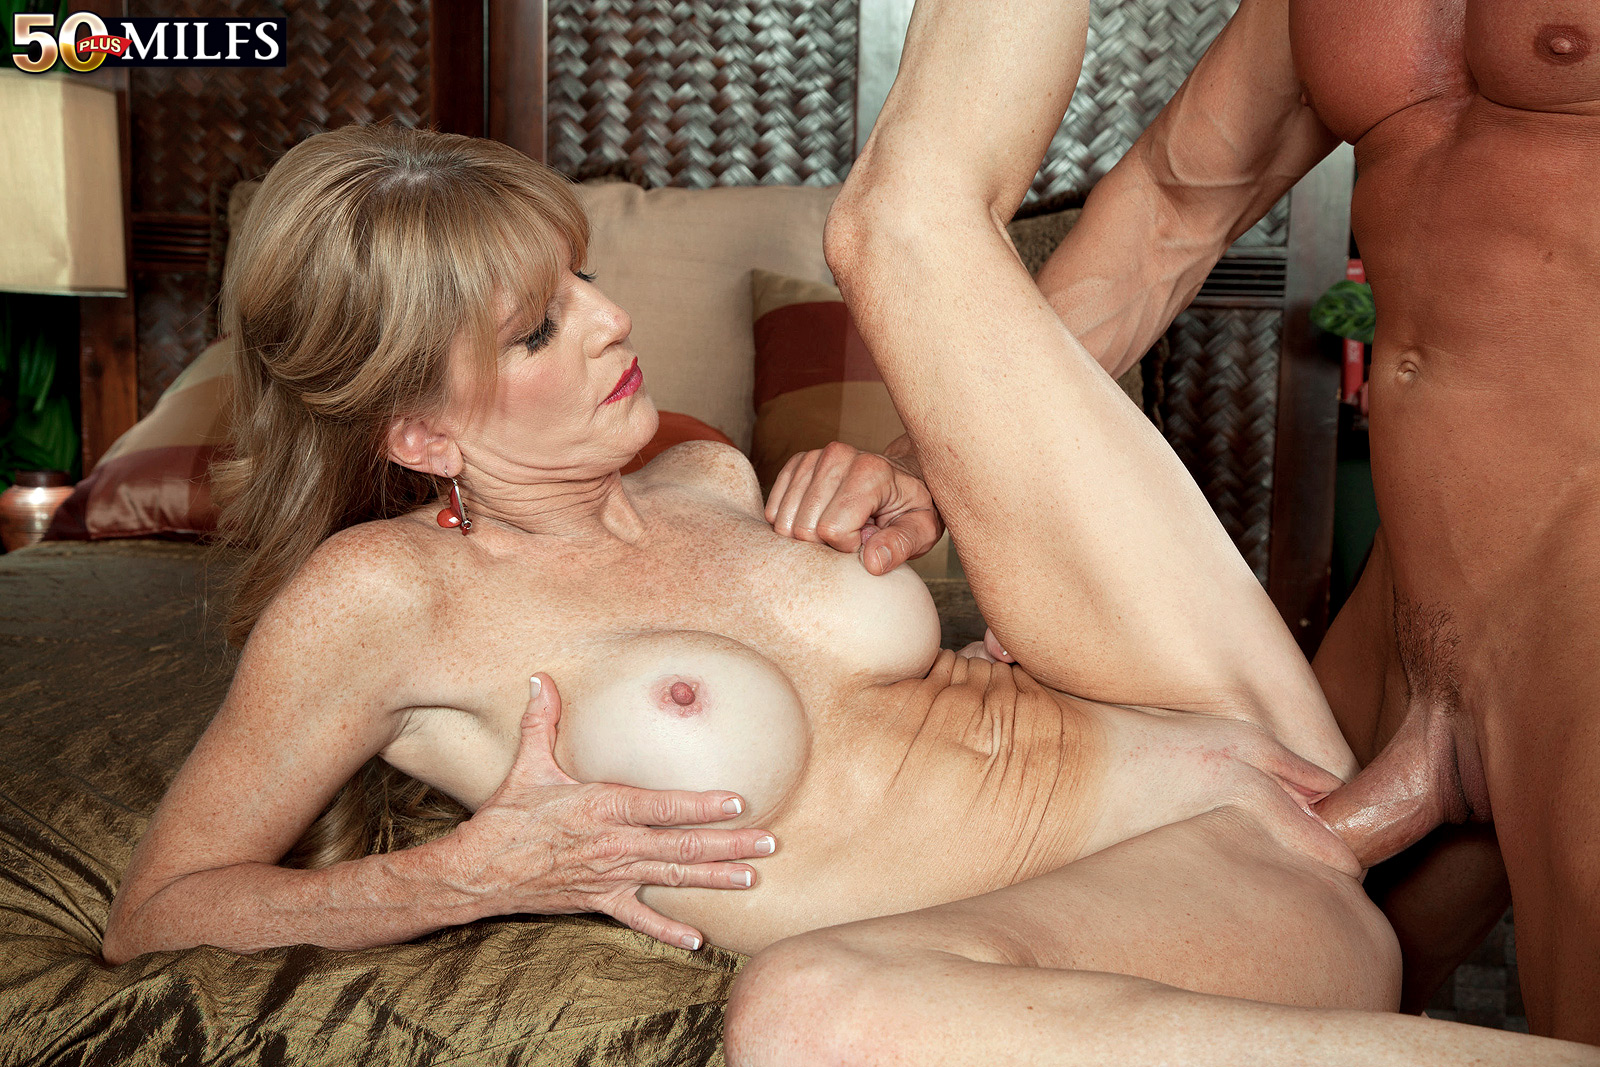 Free mature picture sex woman xnxx